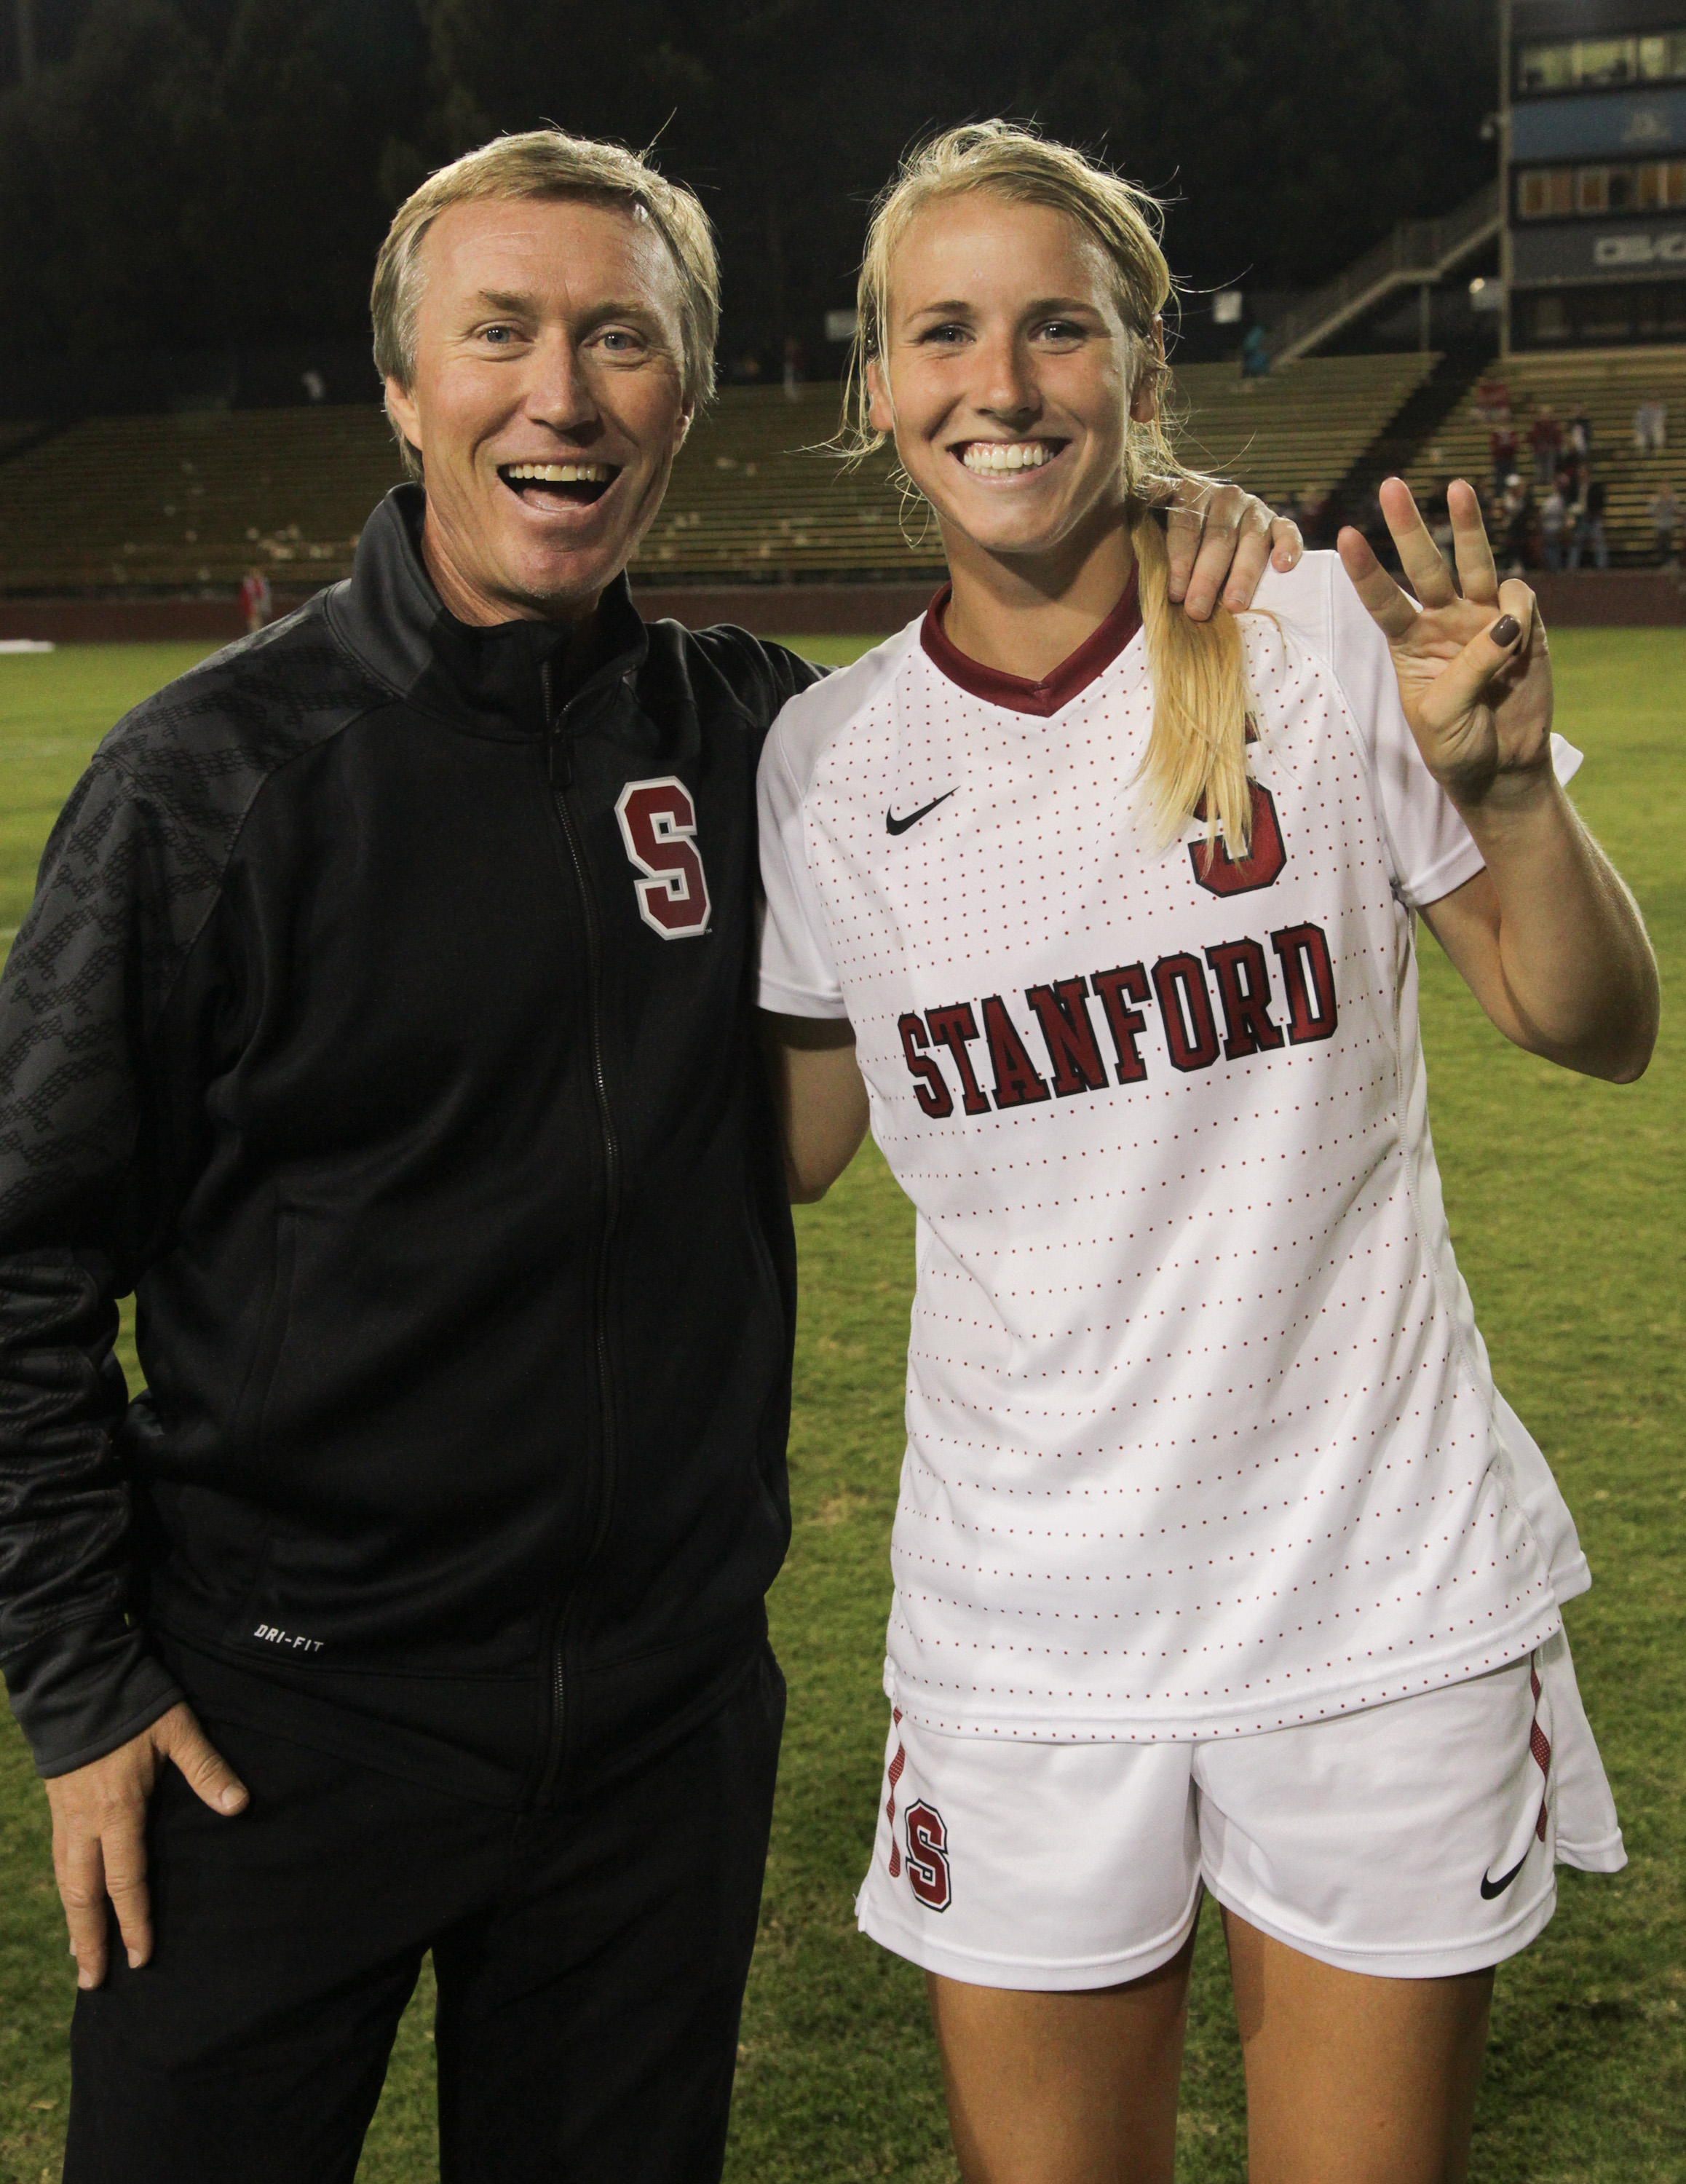 Courtney Verloo, Stanford, womens college soccer